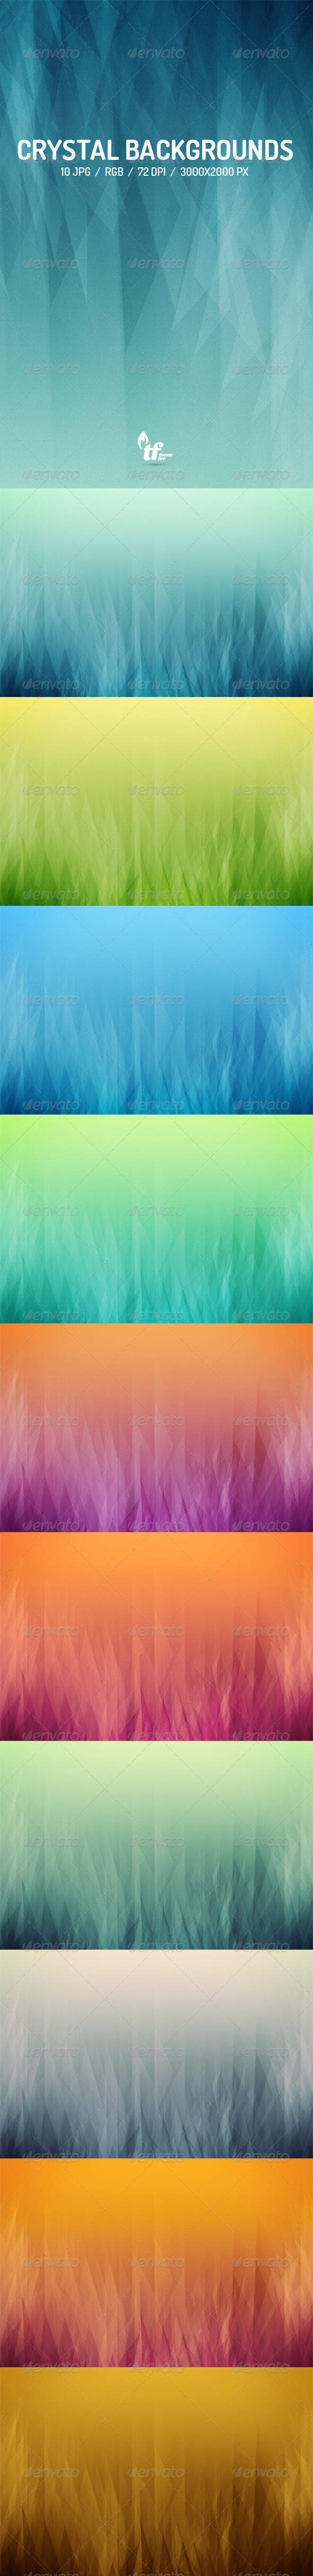 GraphicRiver Crystal Backgrounds 7642913